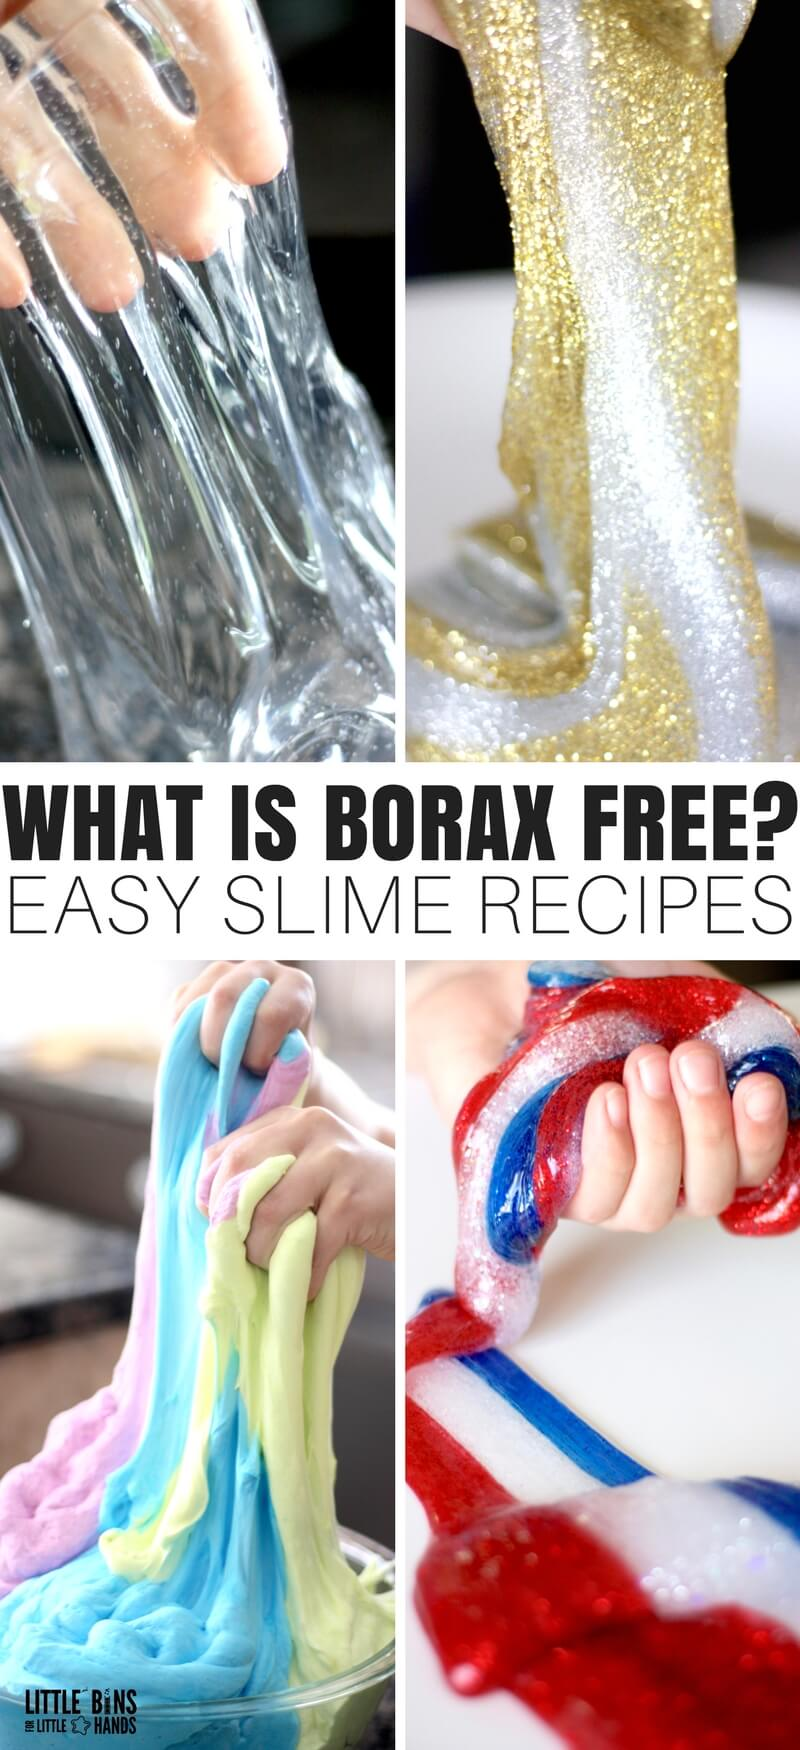 "I thought I would put together a quick page about making an easy slime recipe without borax and what it actually means when you see a slime labeled ""BORAX FREE"". We think making homemade slime is a real treat, and we want you to find the best slime for you, and I just know that we have a slime recipe that will suit your needs."